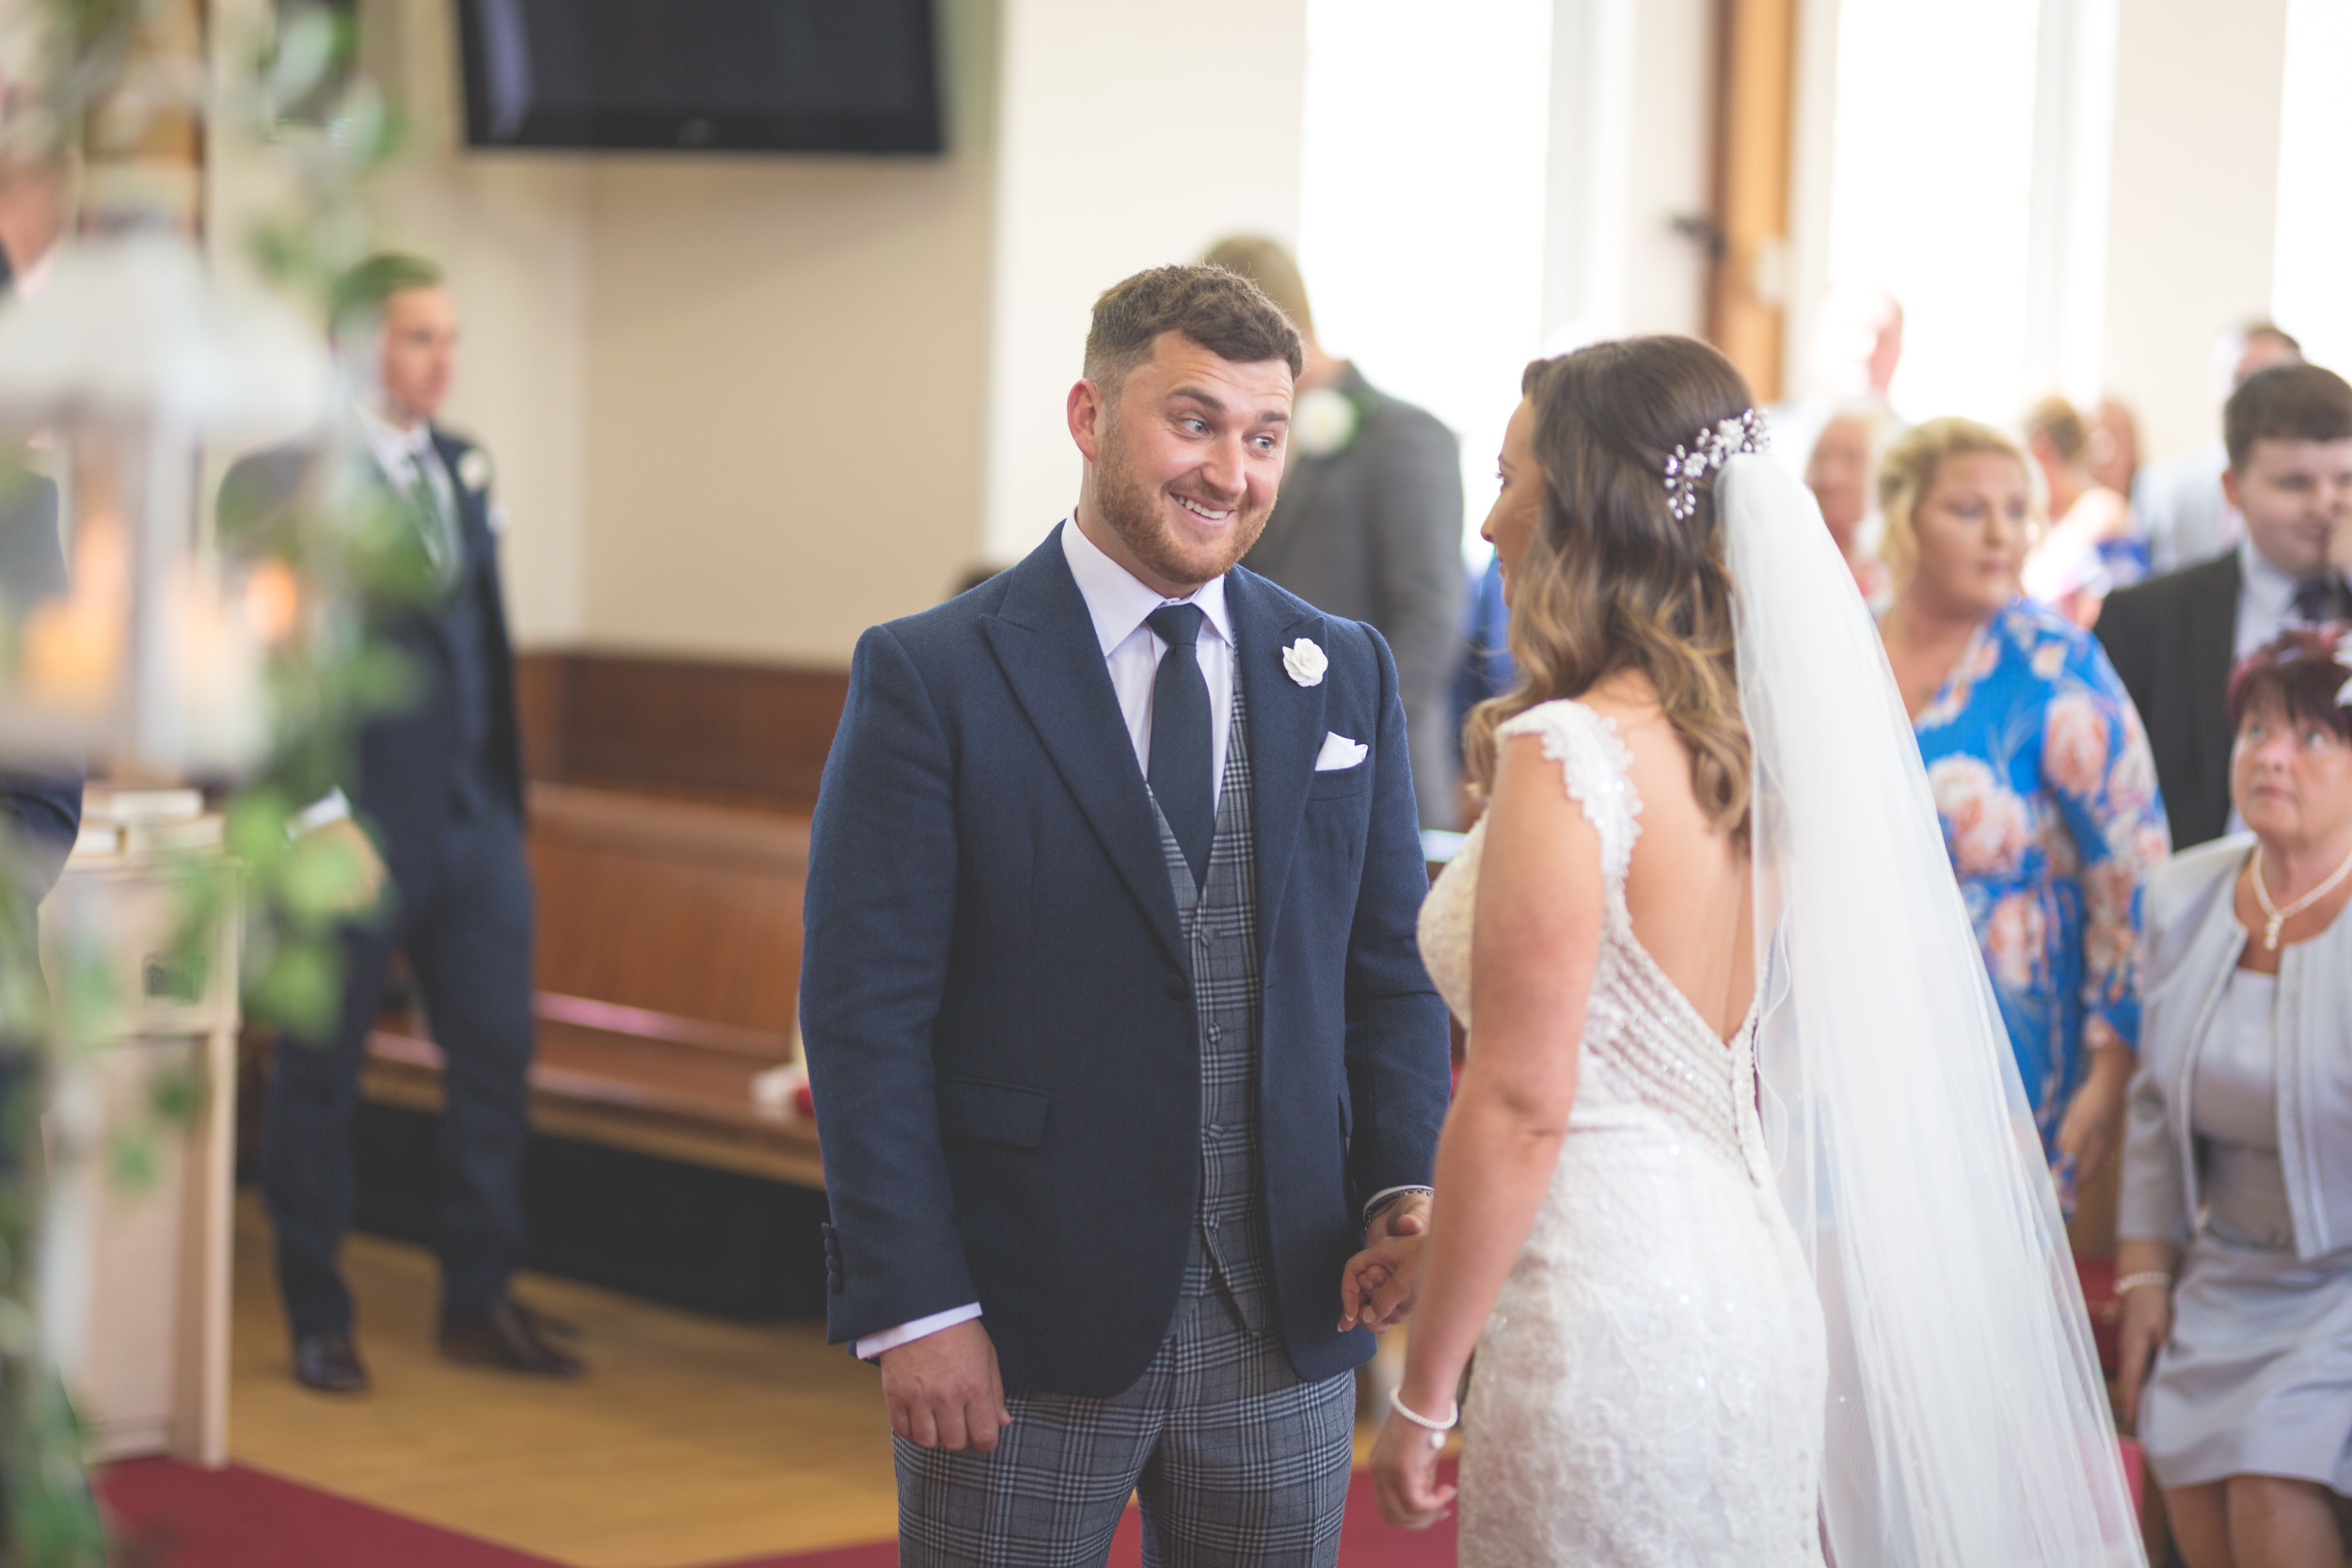 Brian McEwan | Northern Ireland Wedding Photographer | Rebecca & Michael | Ceremony-44.jpg